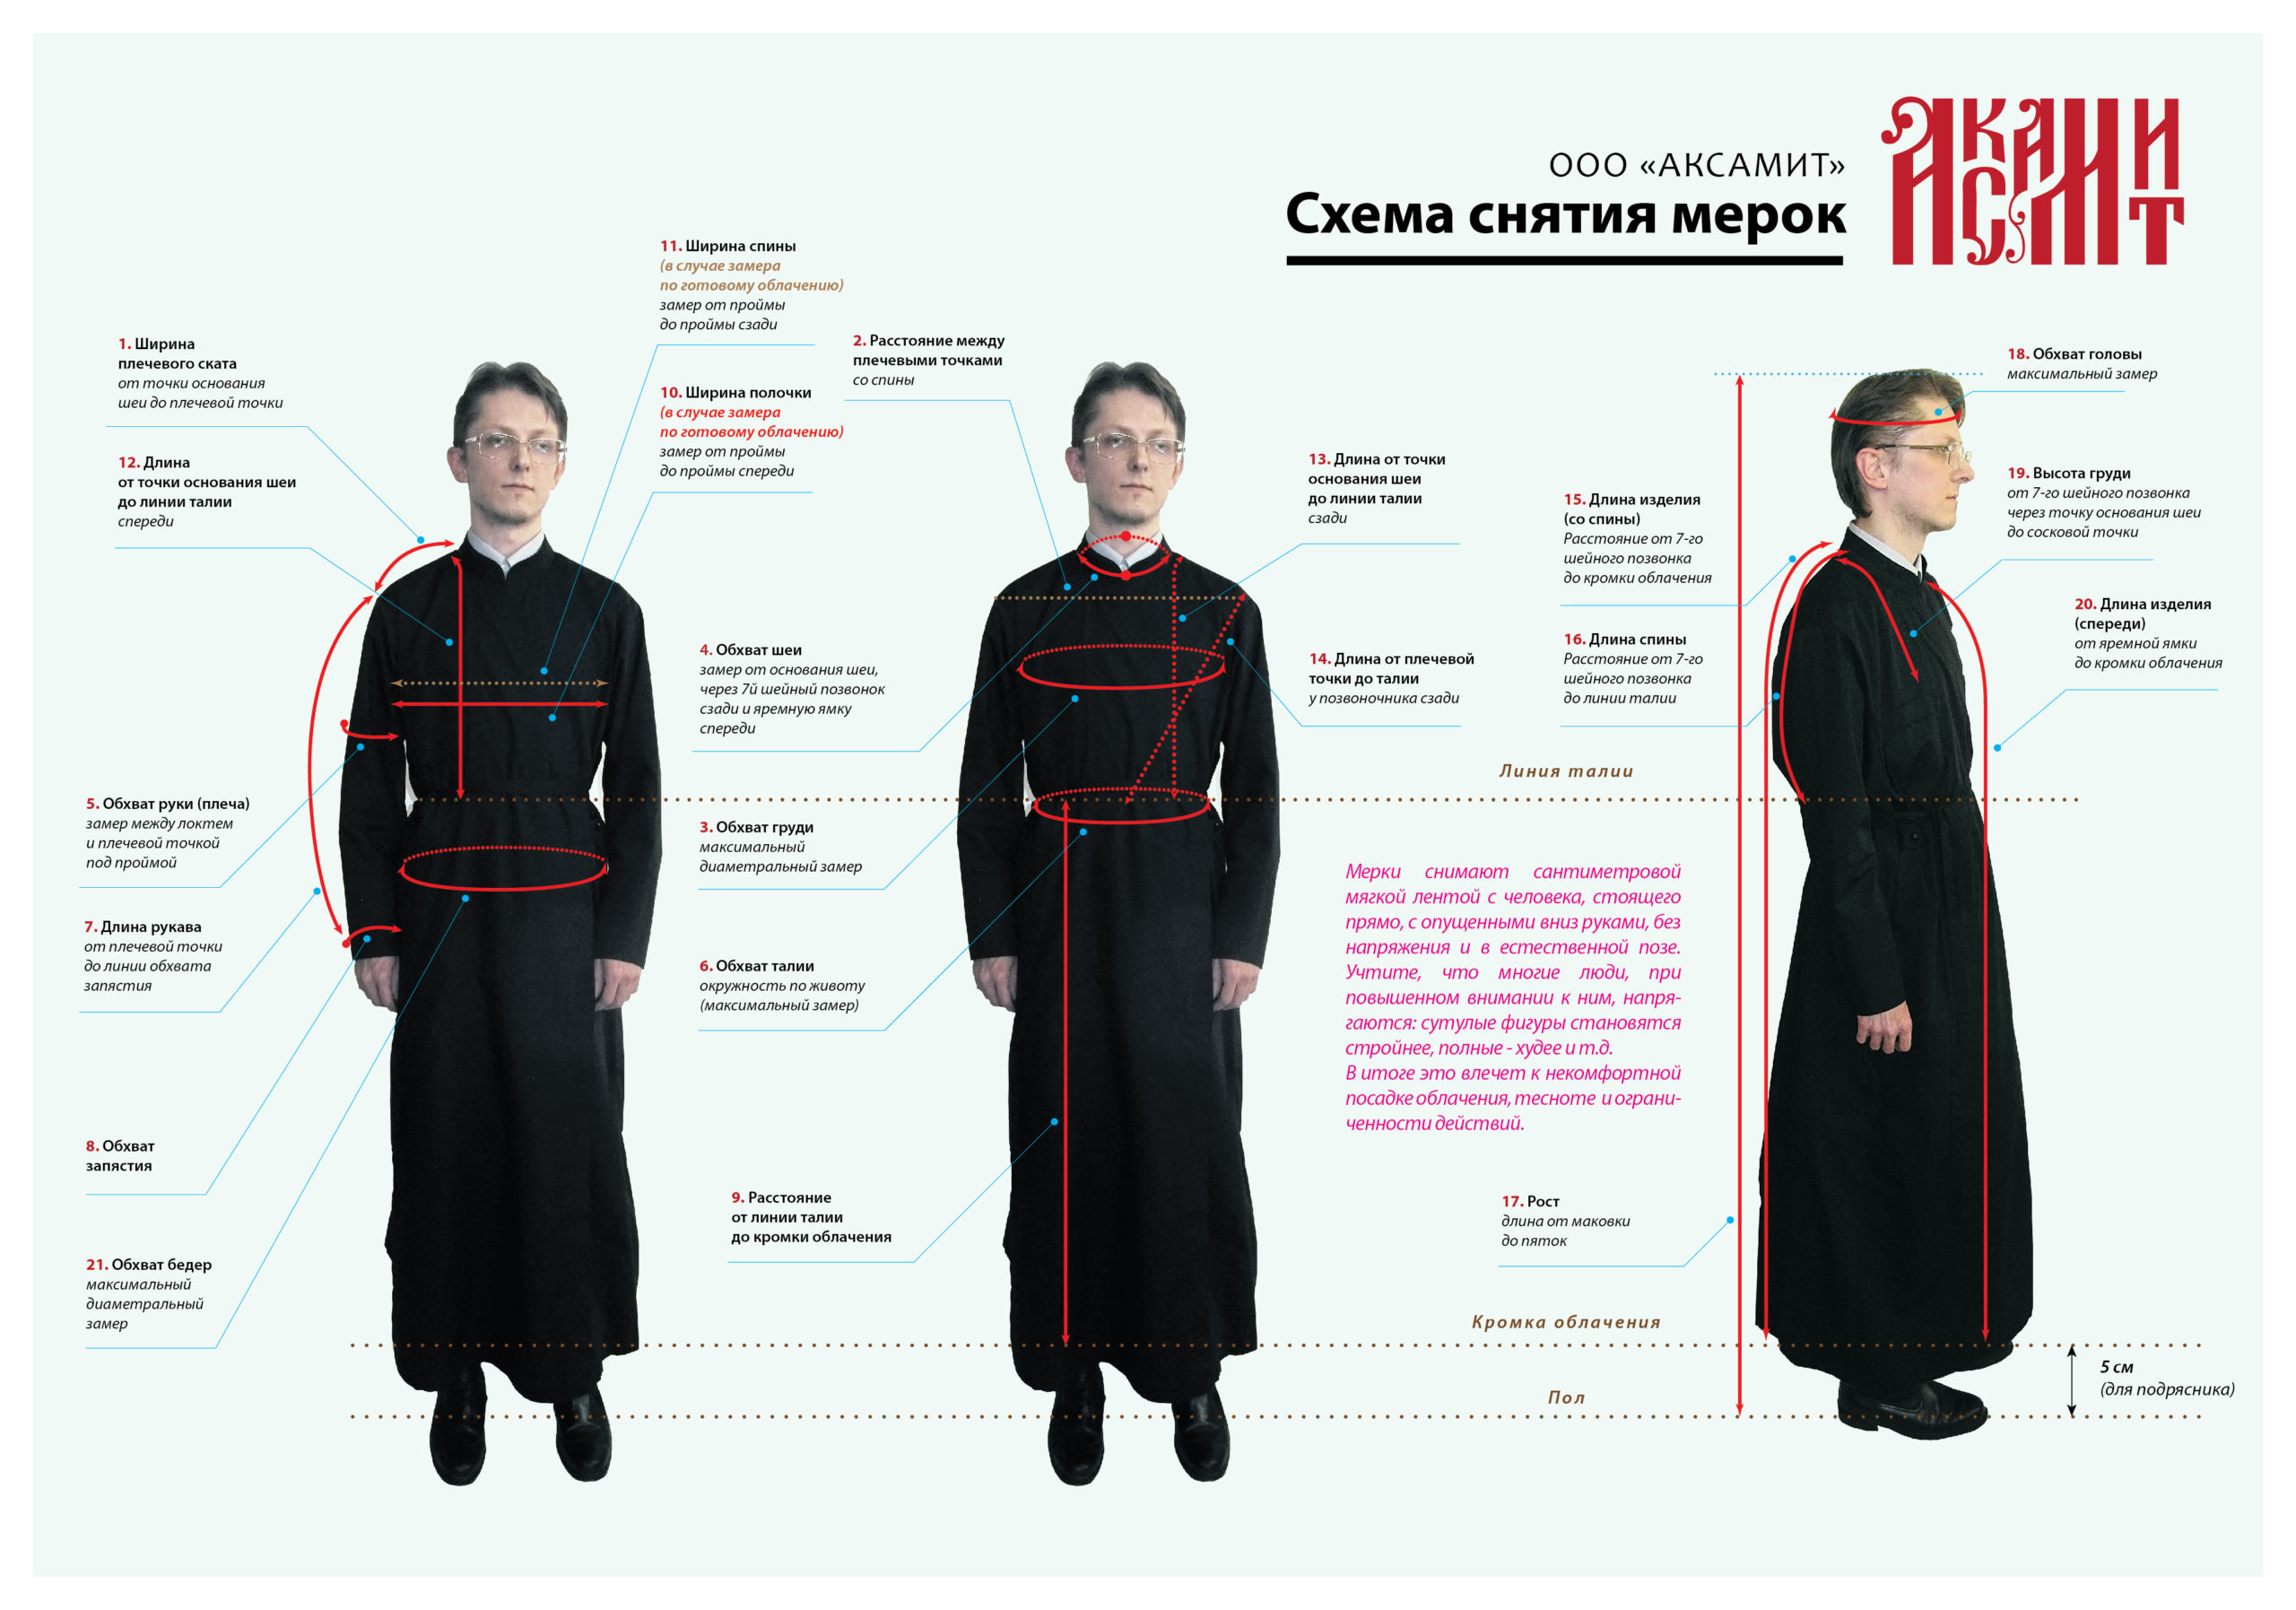 taking measurements of custom-made vestments in the Axamit workshop